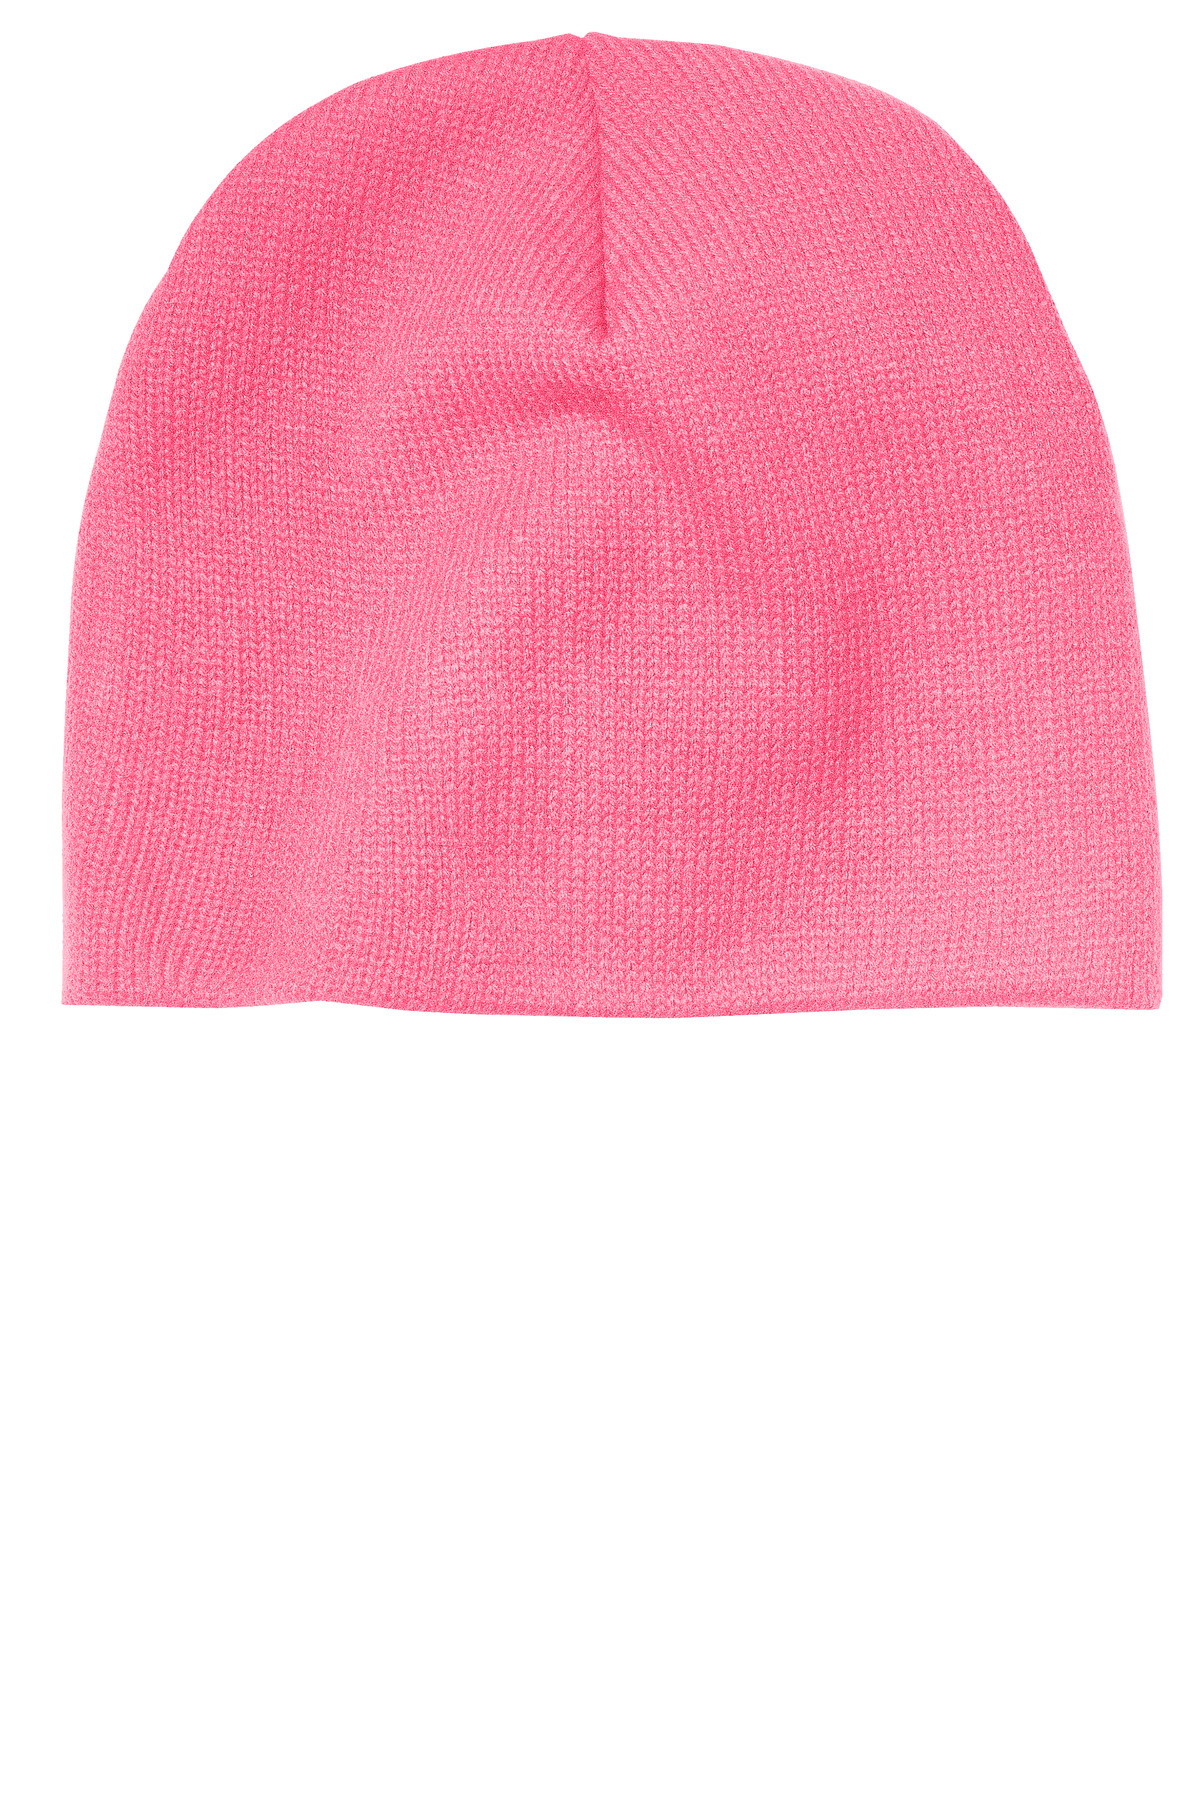 Port & Company ®  Beanie Cap.  CP91 - Neon Pink Glo